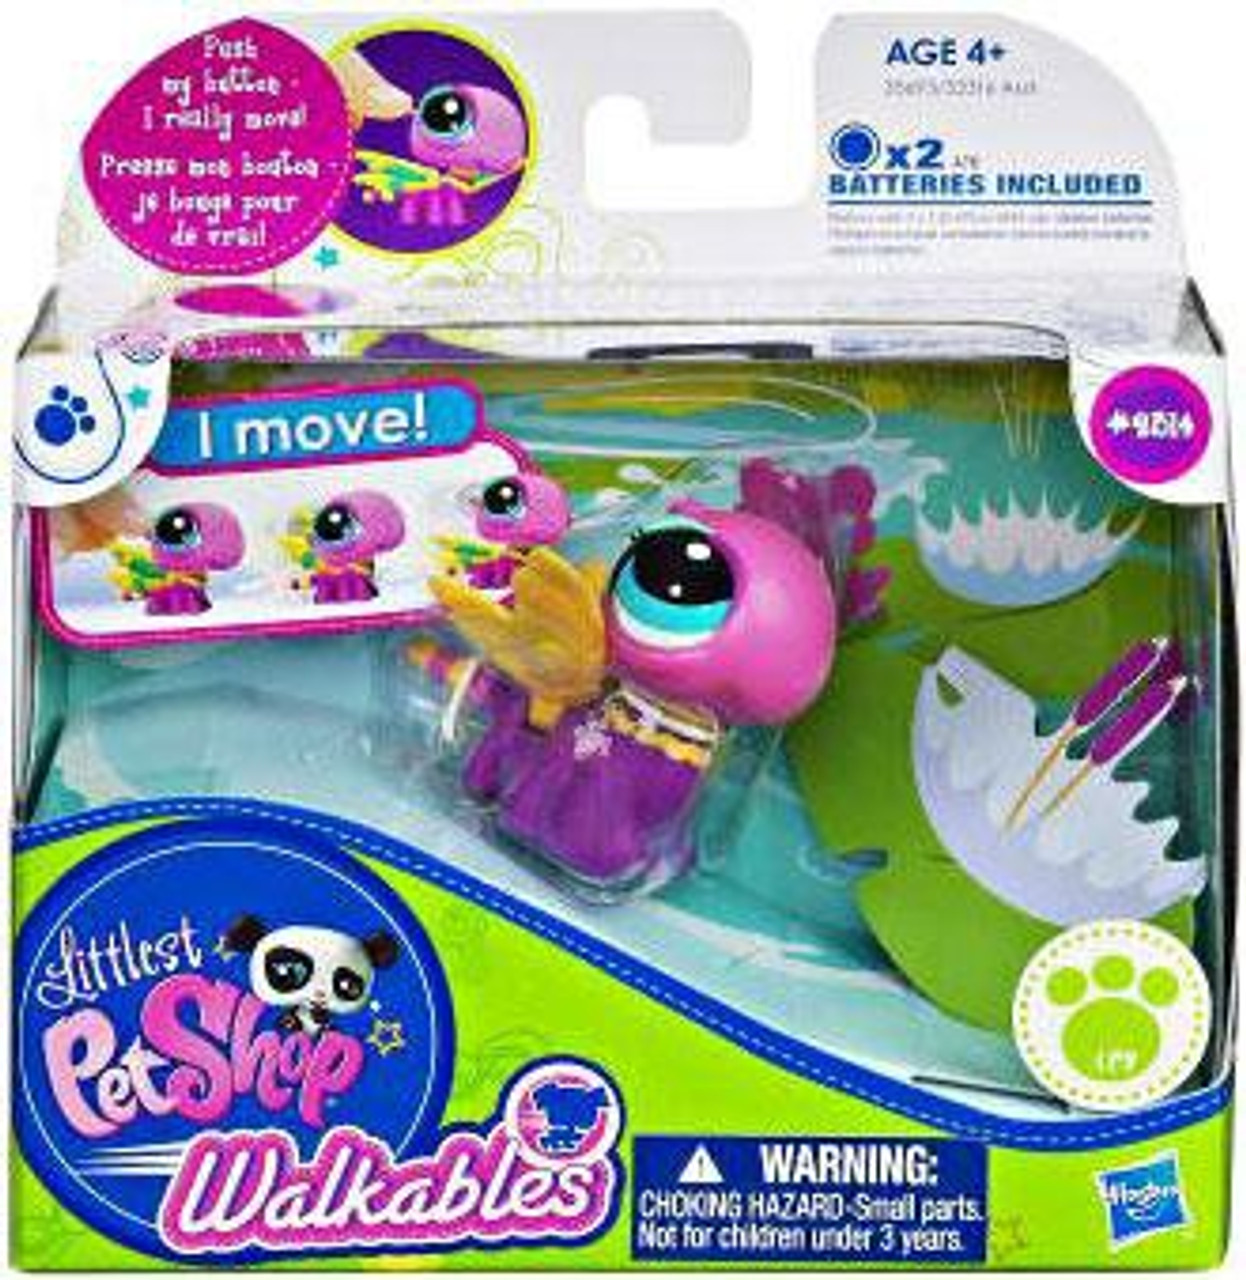 Littlest Pet Shop Walkables Dragonfly Figure #2314